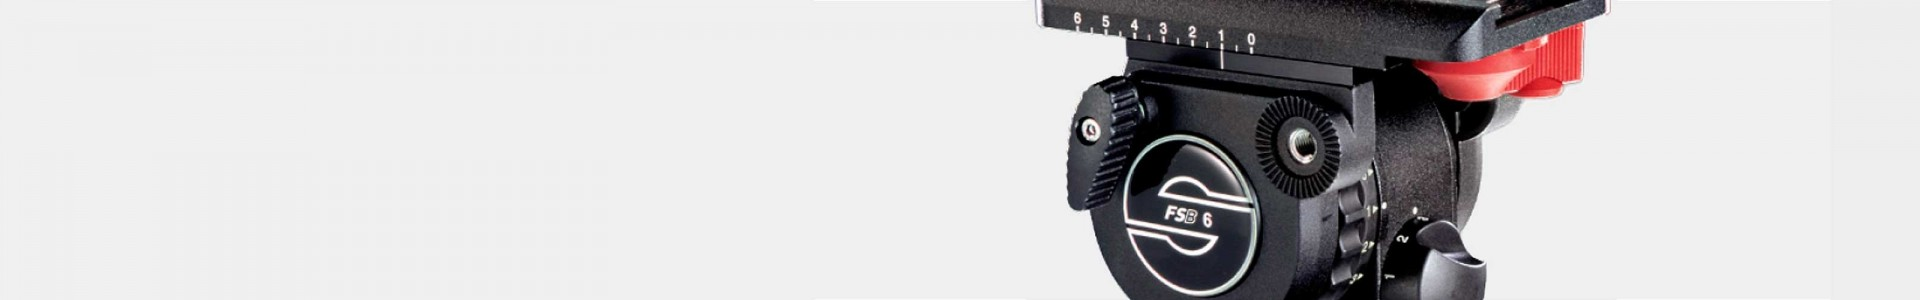 Sachtler tripods at Avacab Audiovisuales - Security and reliability